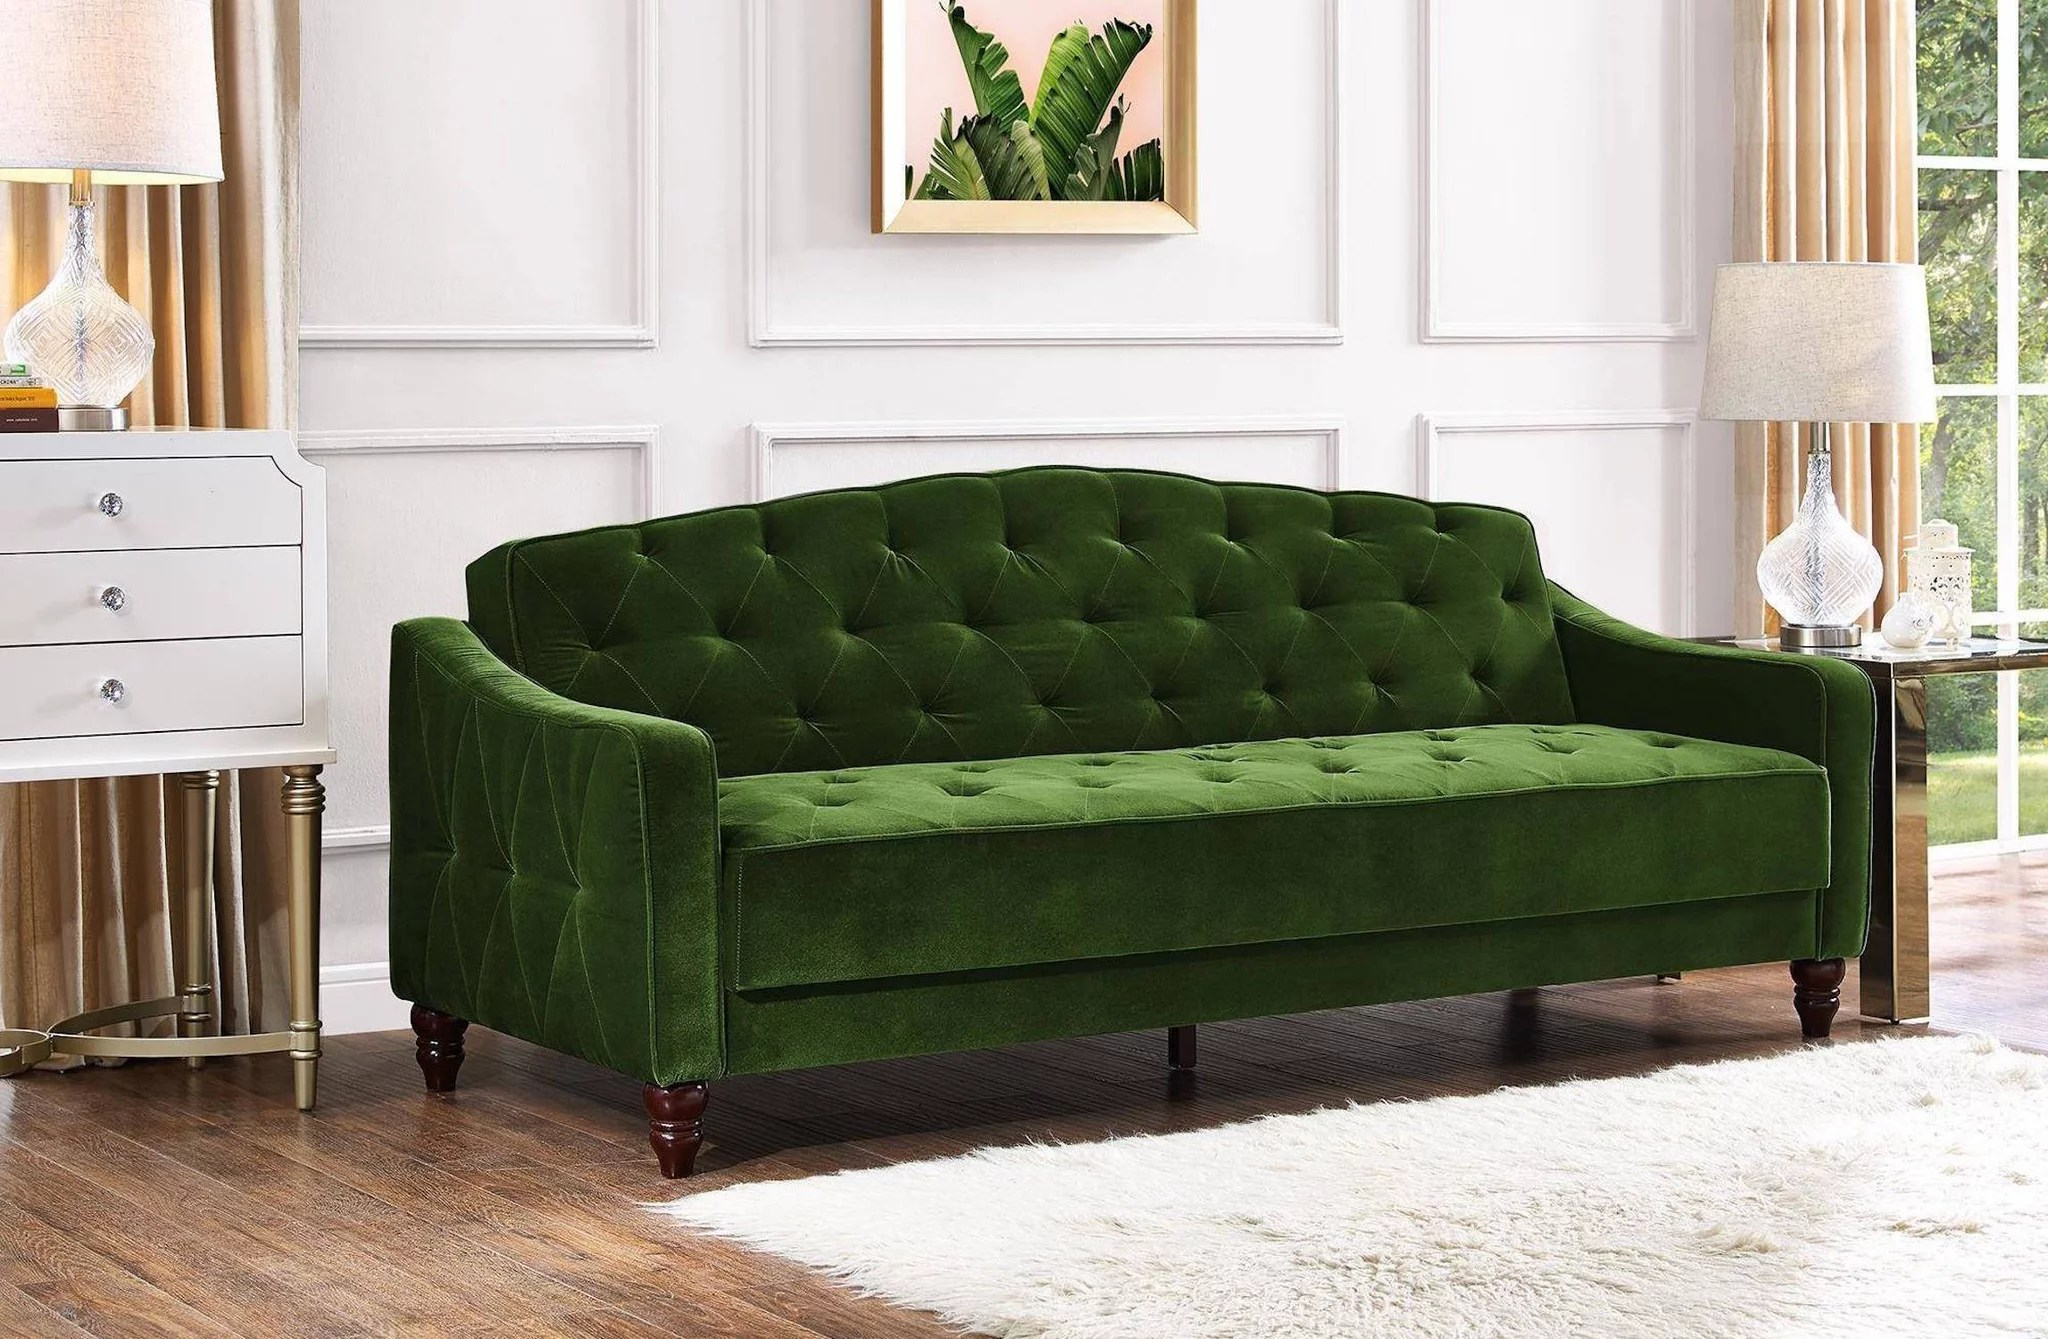 Couch Sofa Novogratz Vintage Tufted Sofa Sleeper Review Popsugar Home